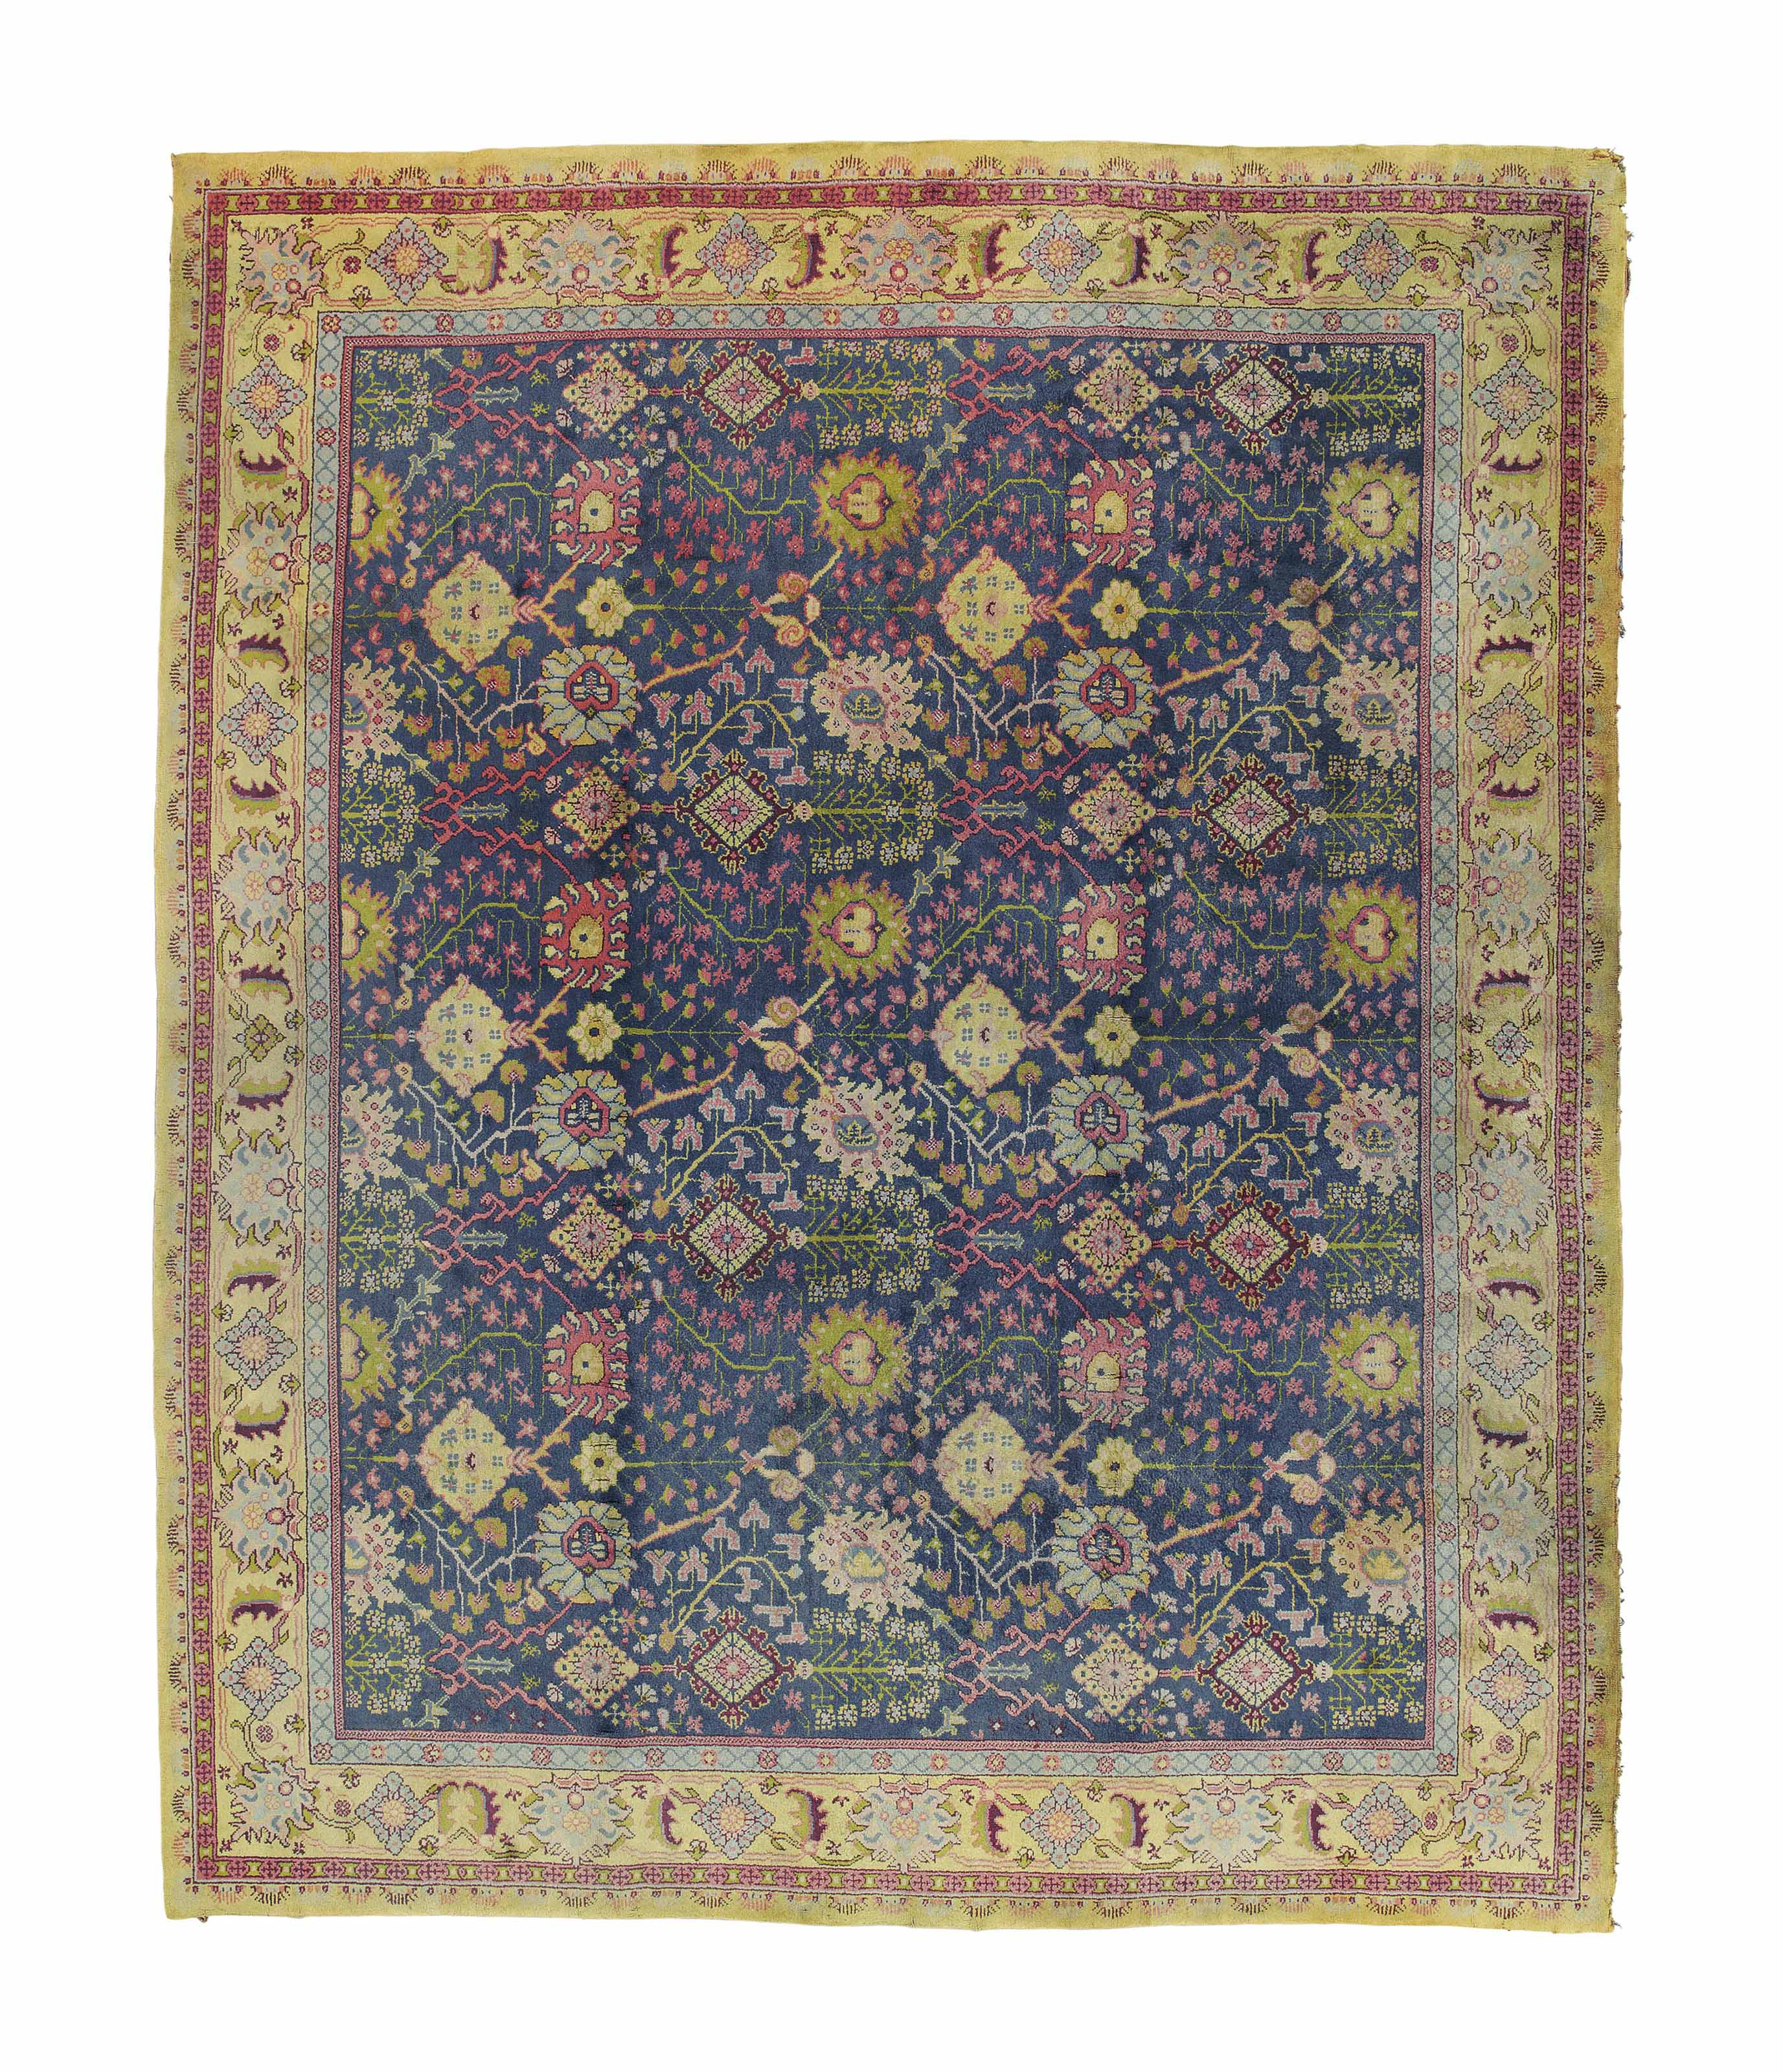 AN ARTS & CRAFTS STYLED CARPET